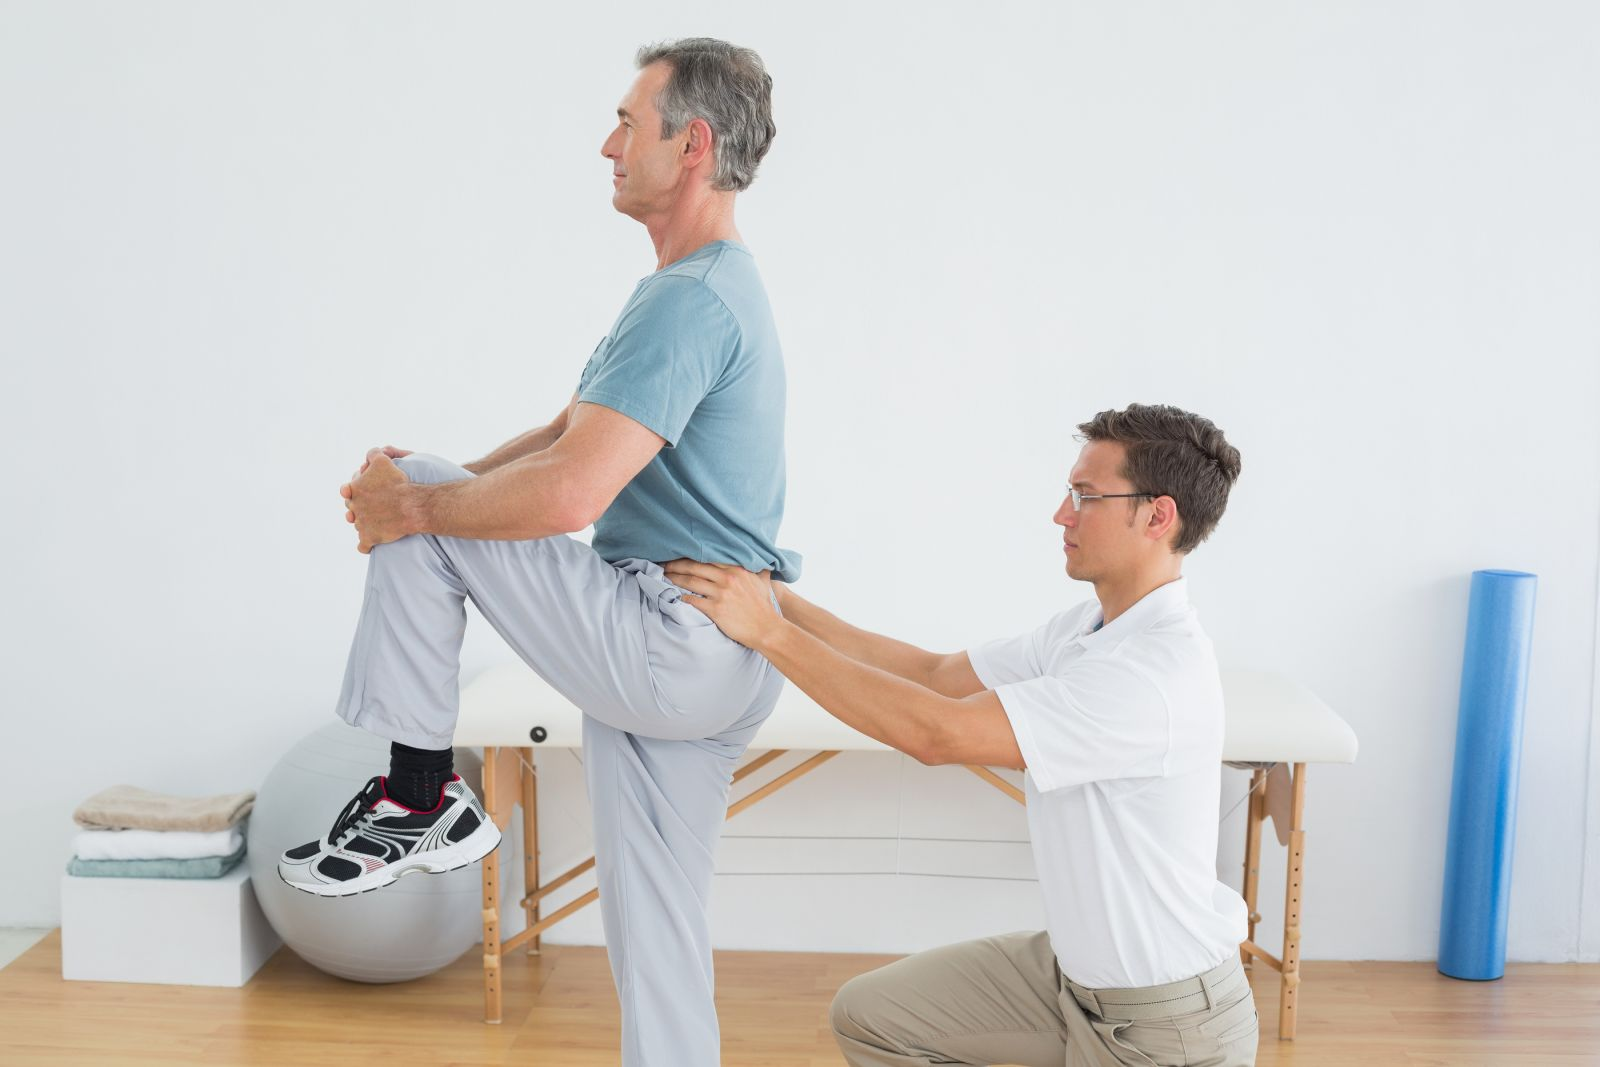 Herniated disc physical therapy - Share On Facebook